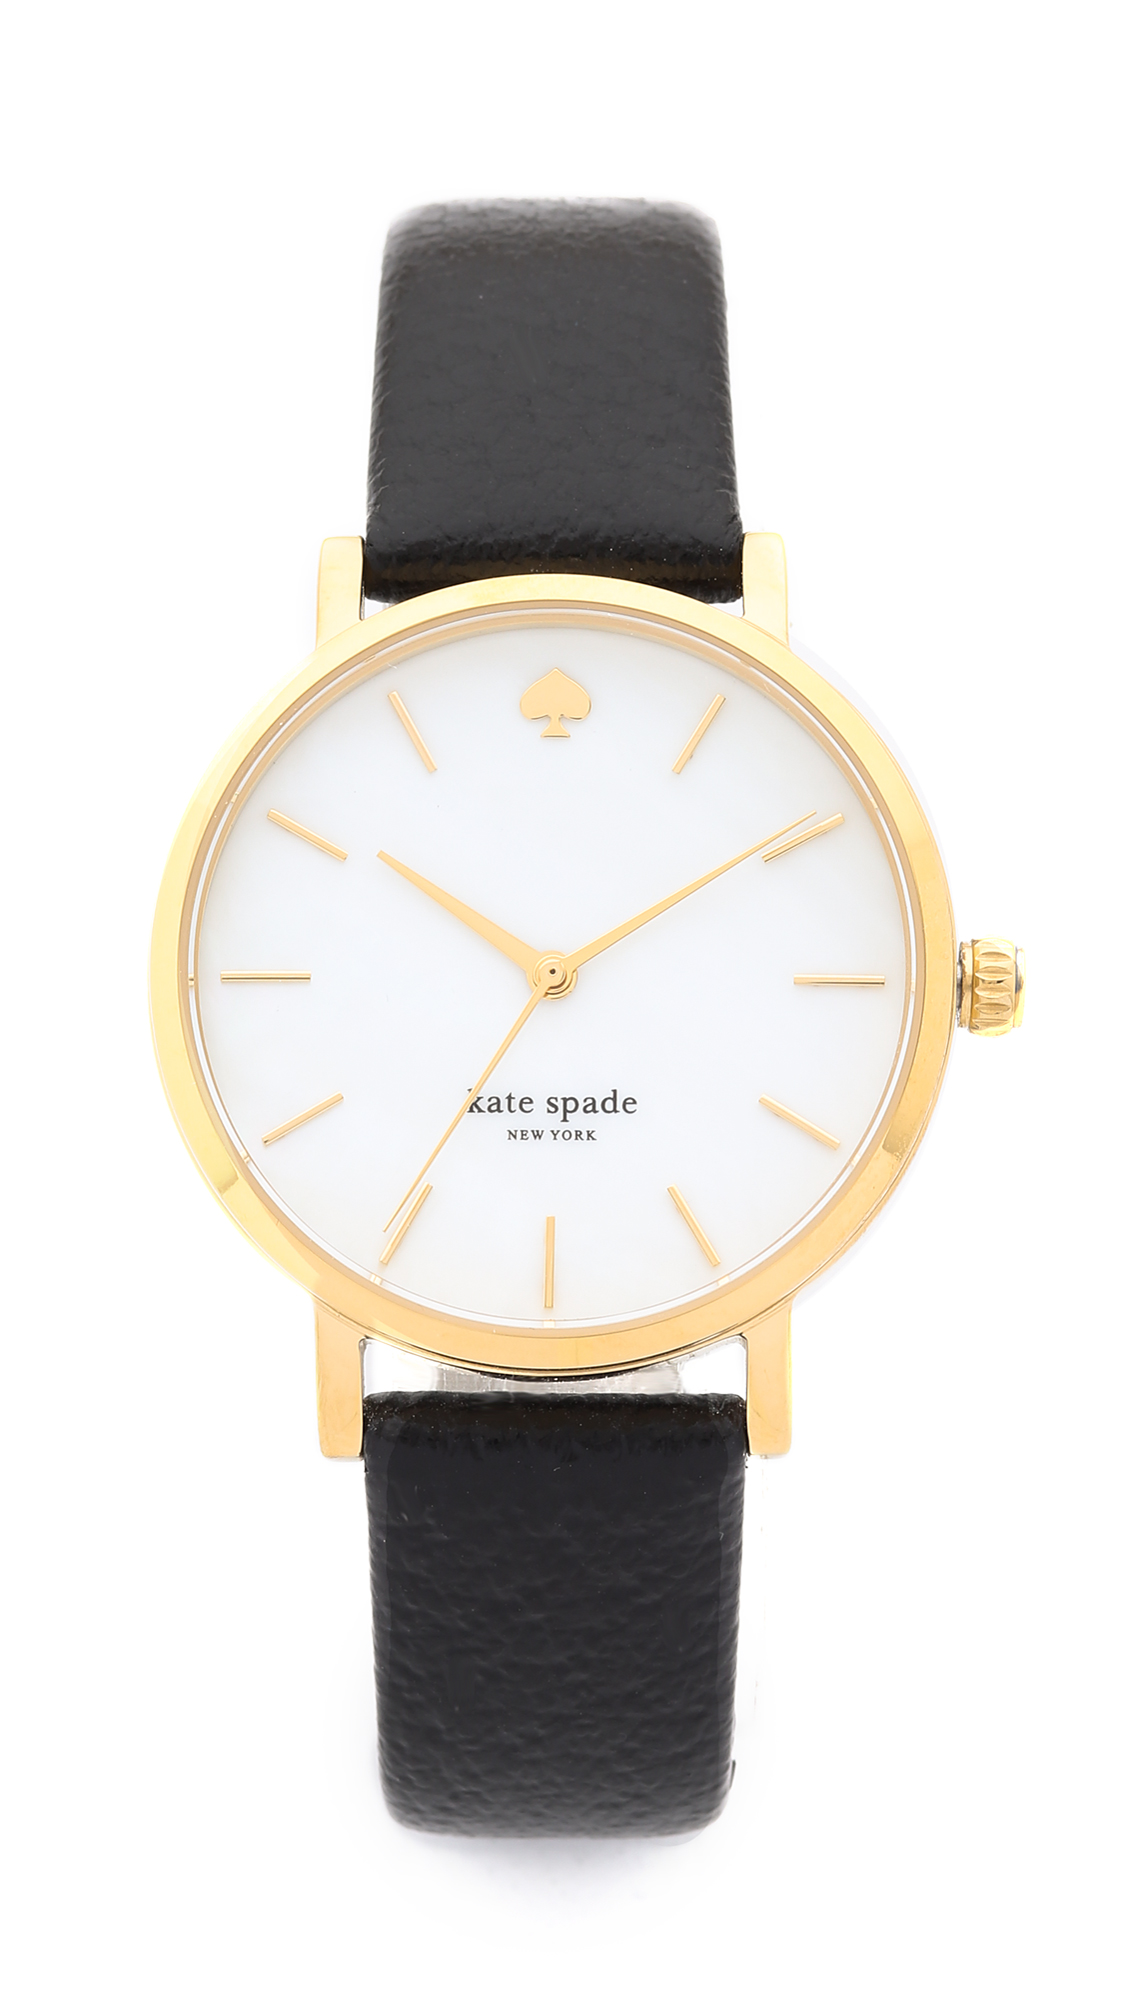 Kate Spade New York Classic Metro Watch - Gold/Black at Shopbop